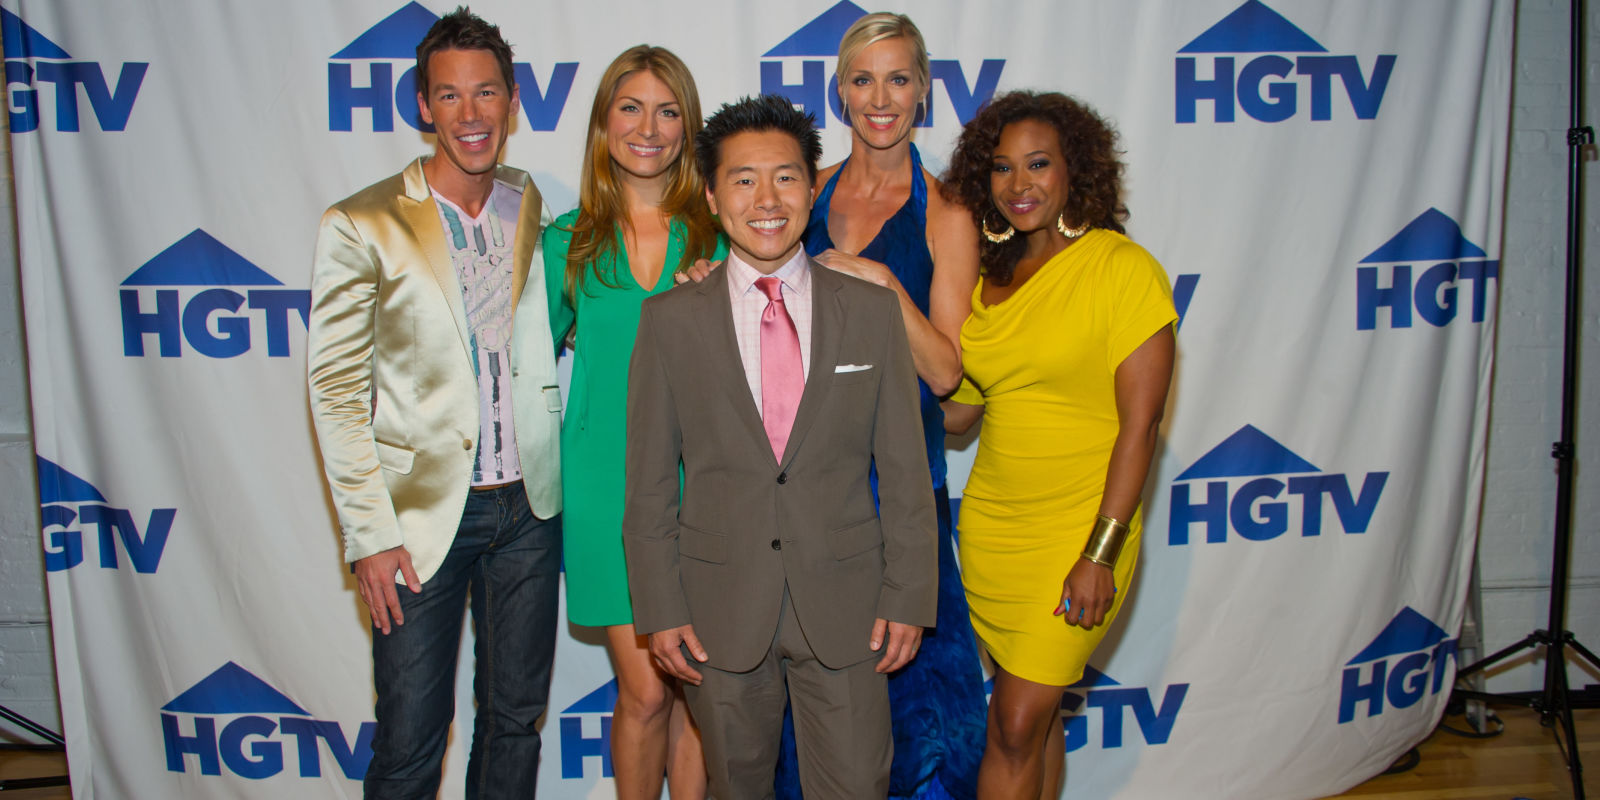 7 Cancelled Hgtv Shows We Wish Would Come Back